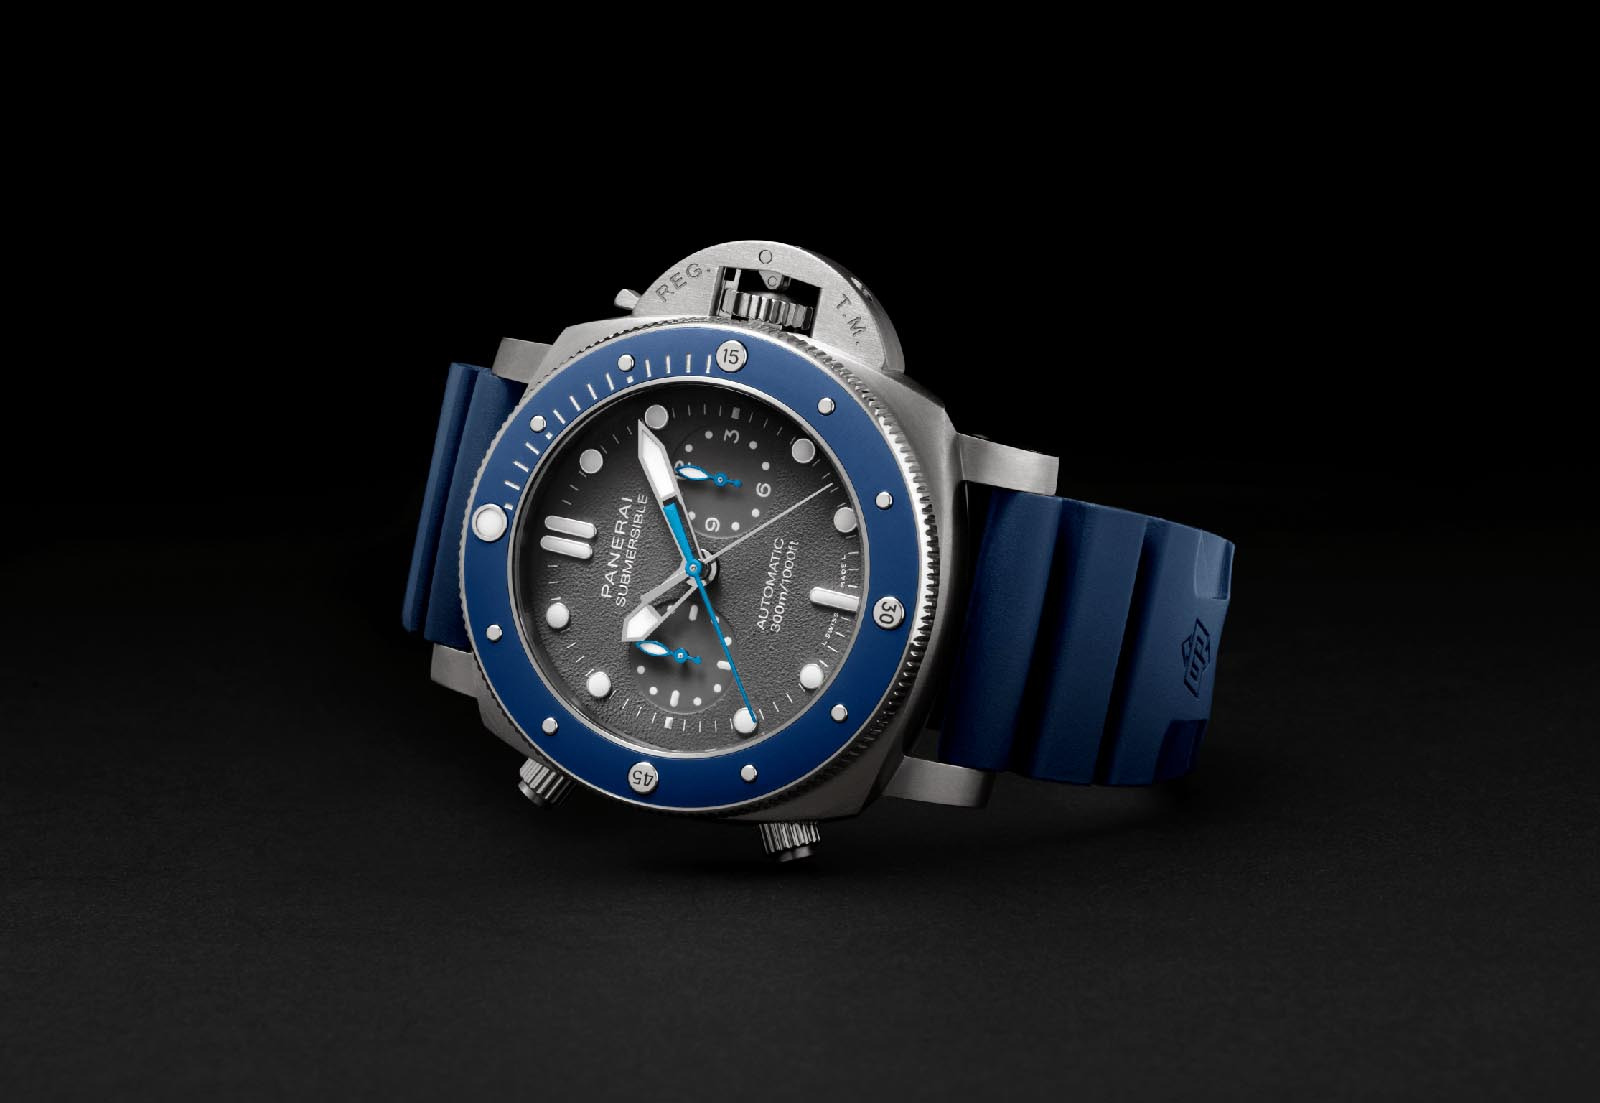 Panerai Submersible Chrono Guillaume Néry Edition PAM00982